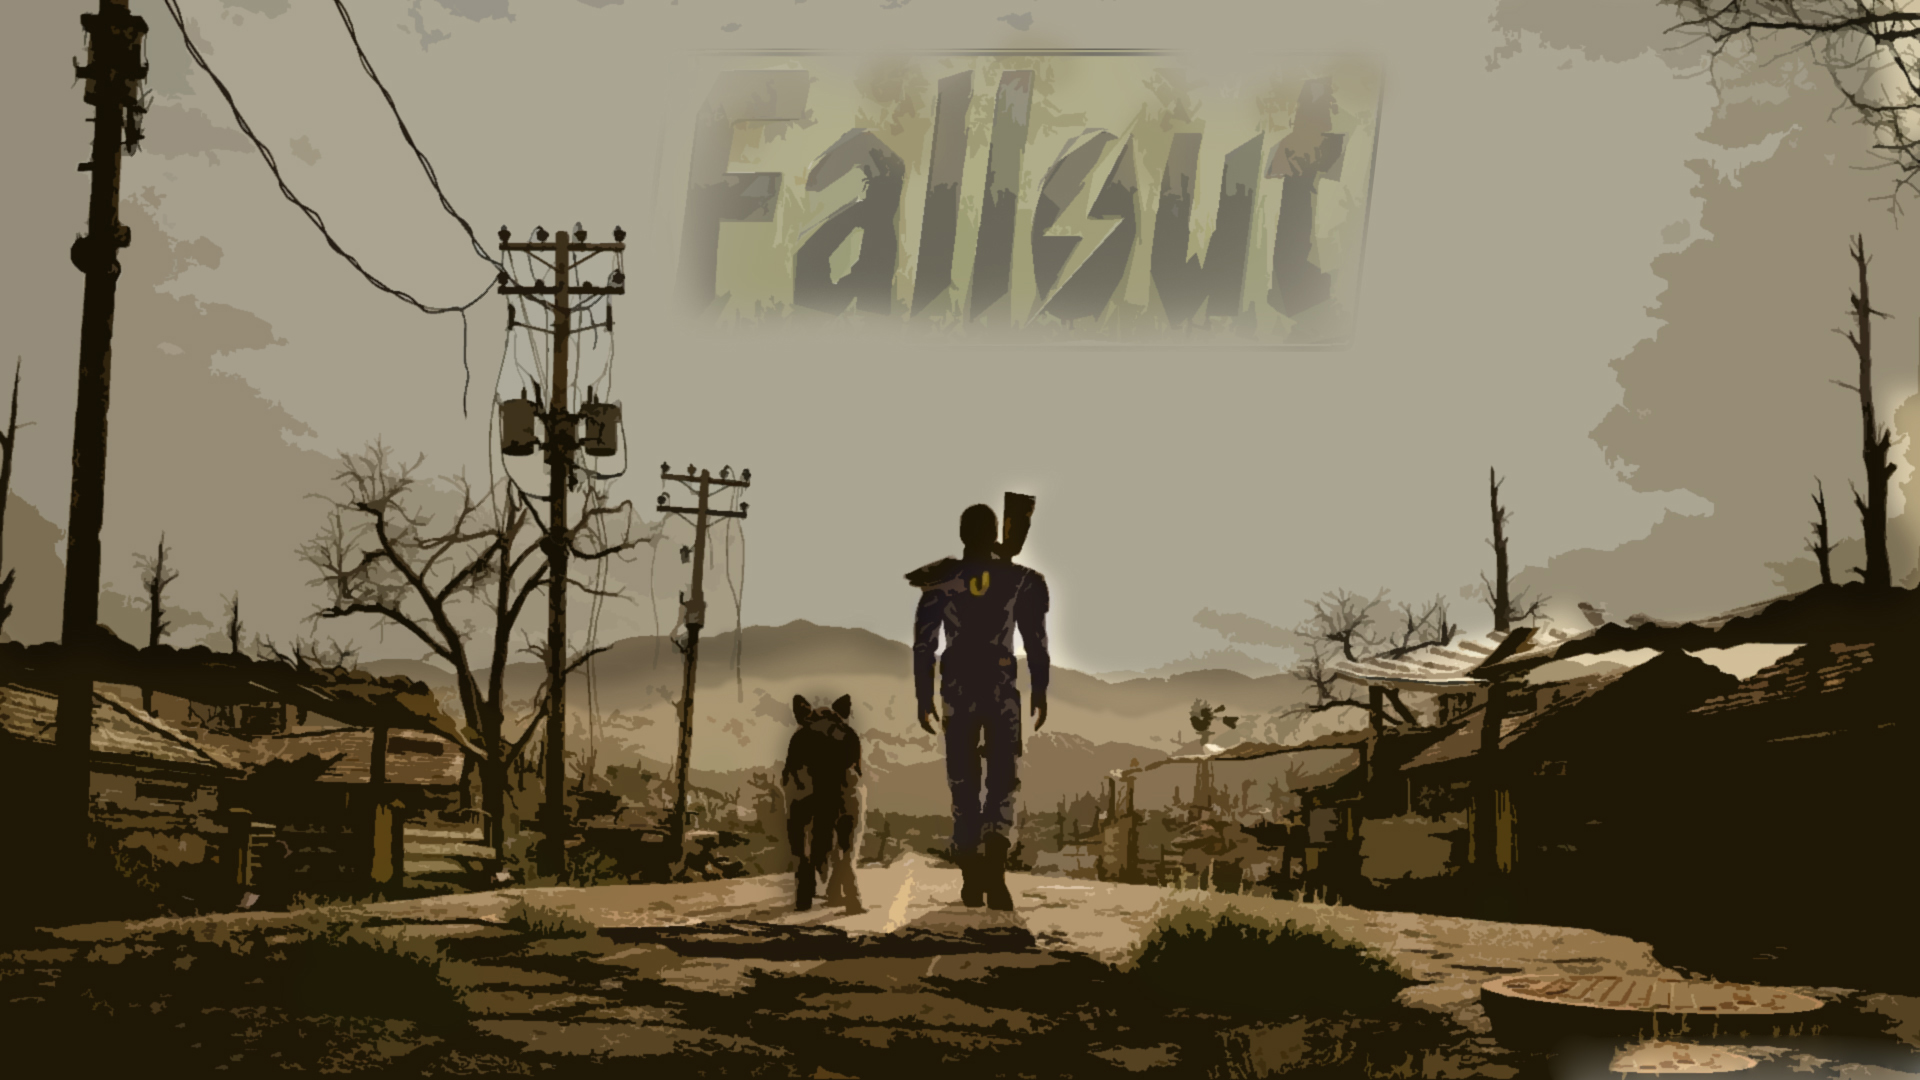 Fallout 4 Wallpaper By Logantop4344